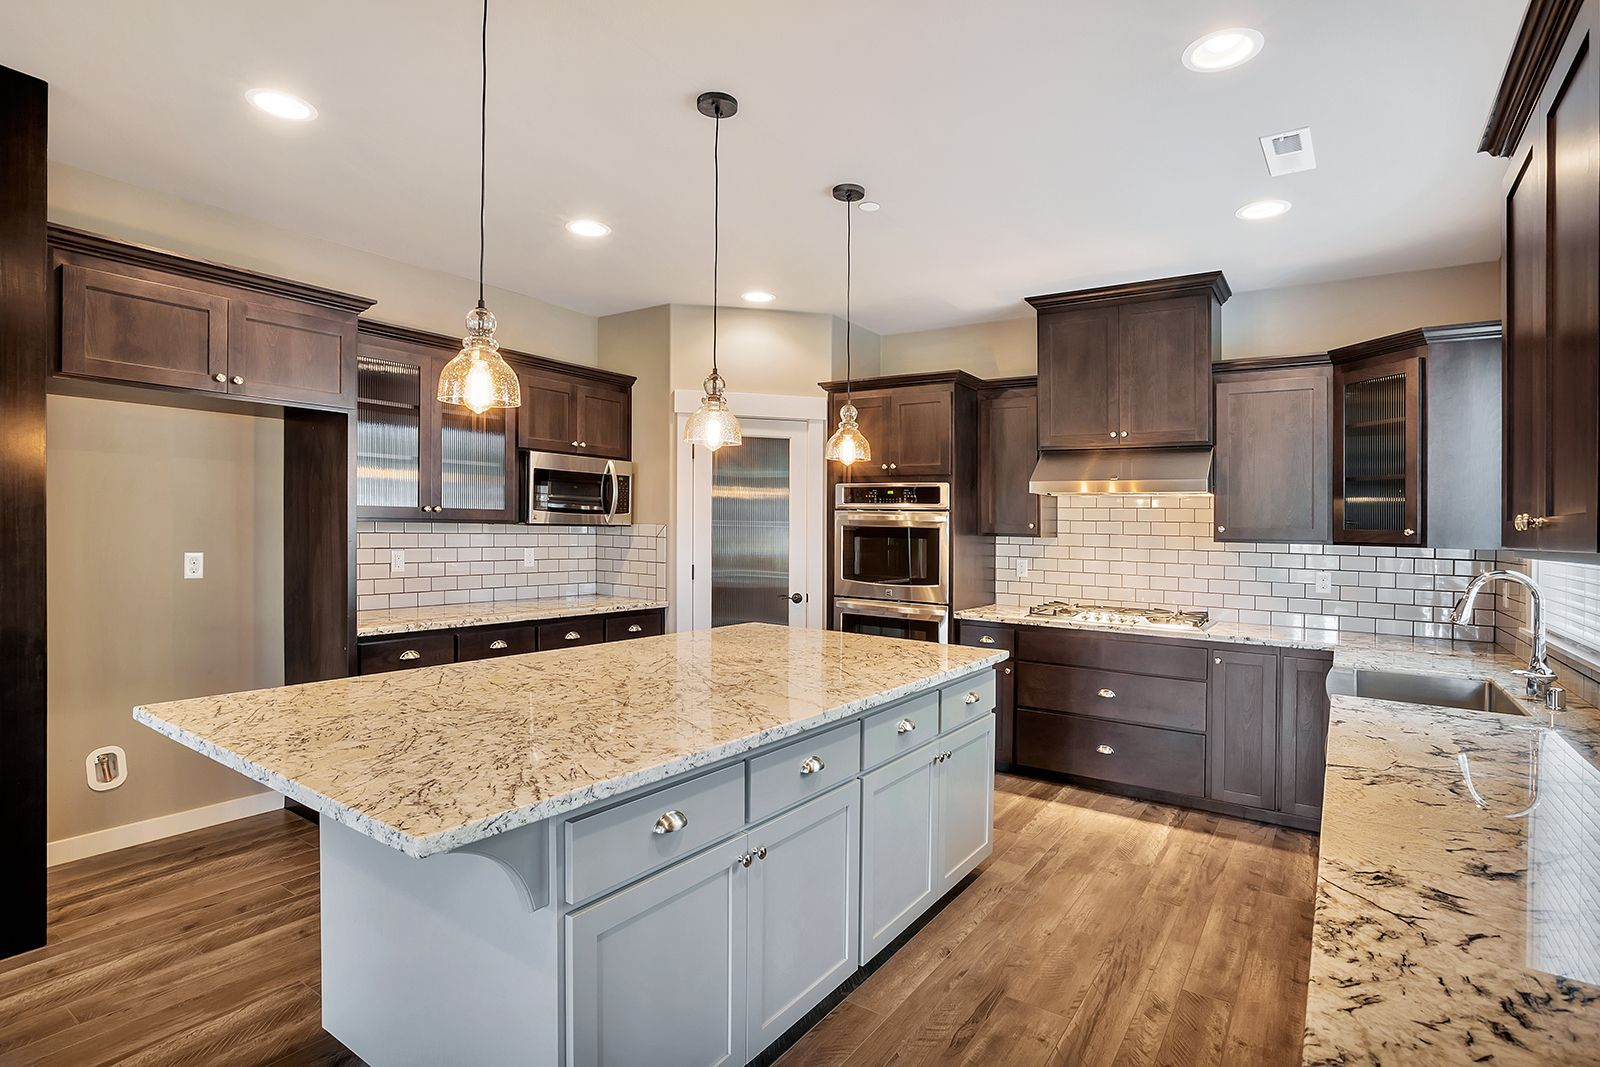 Sears Kitchen Cabinets In 2020 Buy Kitchen Cabinets Kitchen Cabinets Upgrade Contemporary Kitchen Cabinets